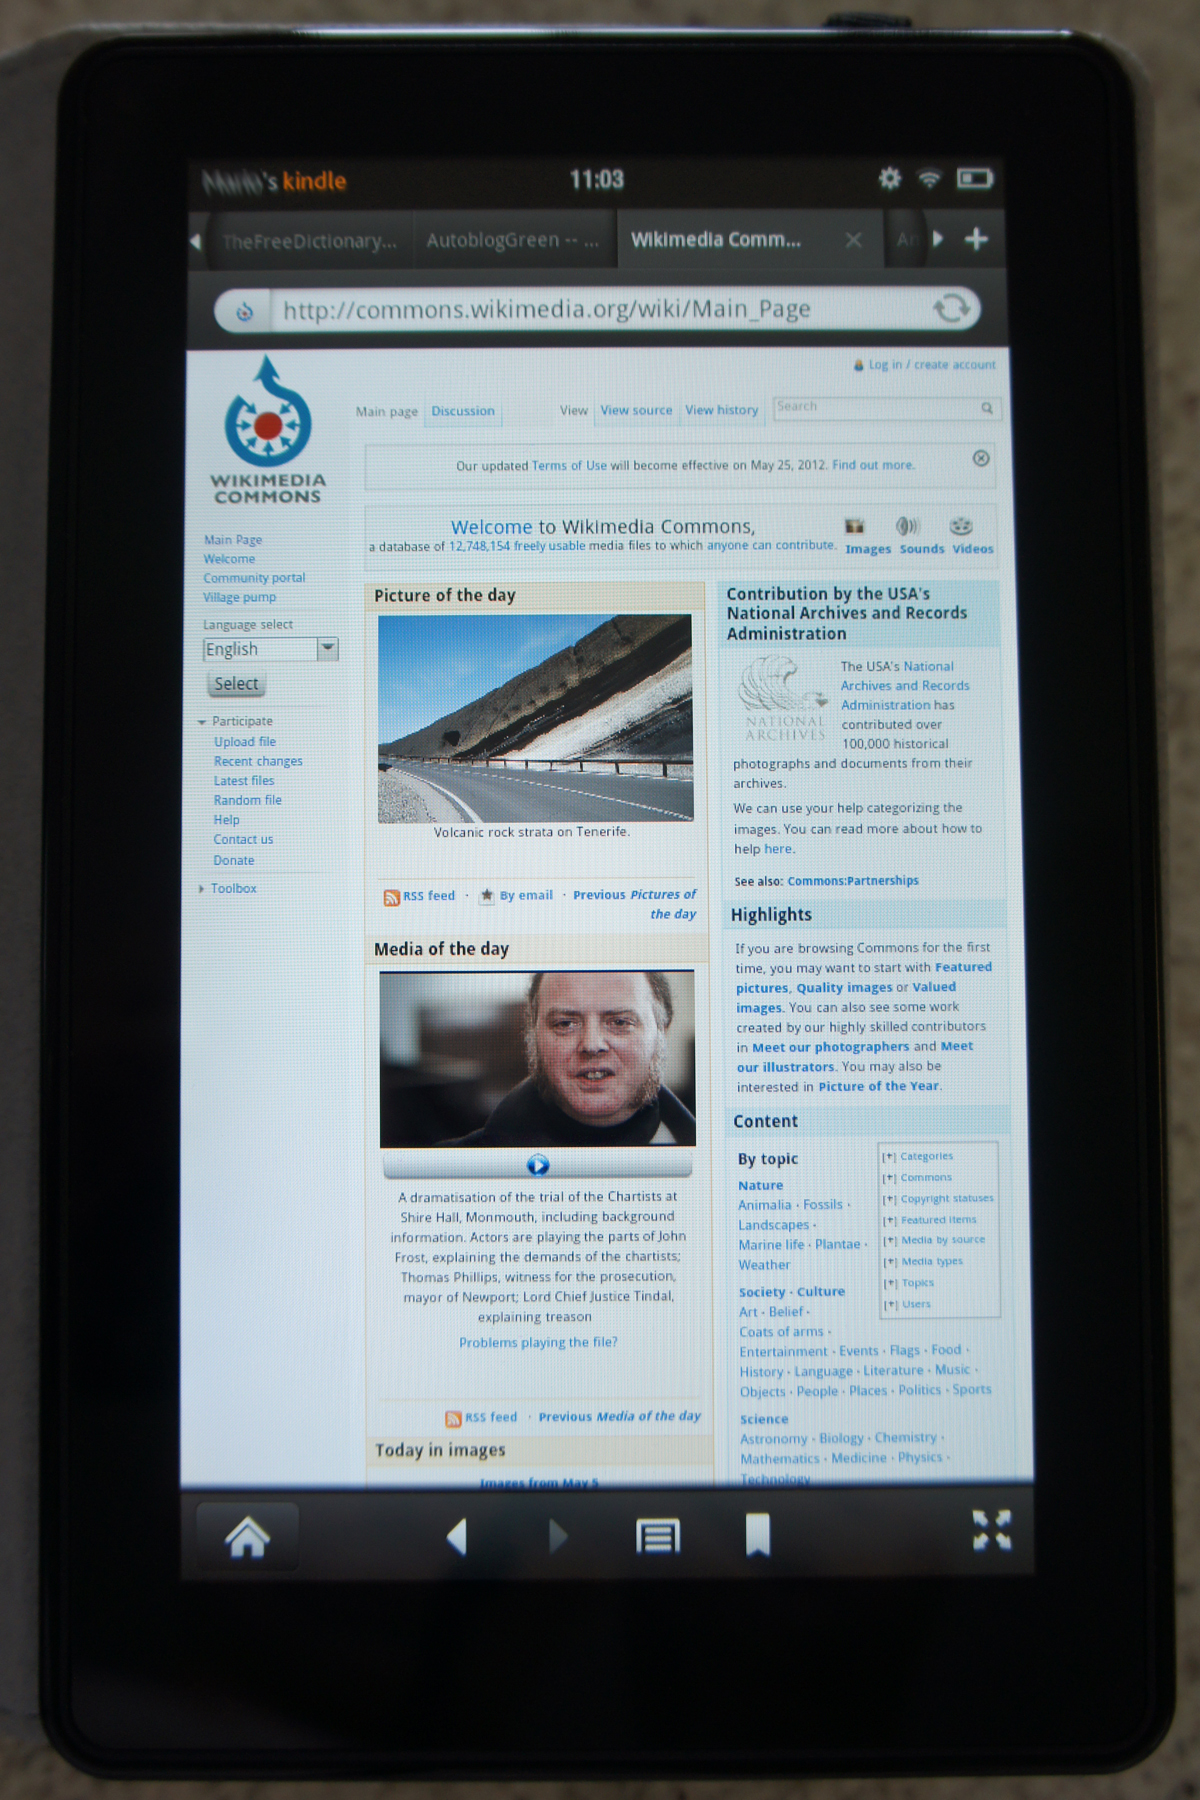 amazon fire tablet wikipedia